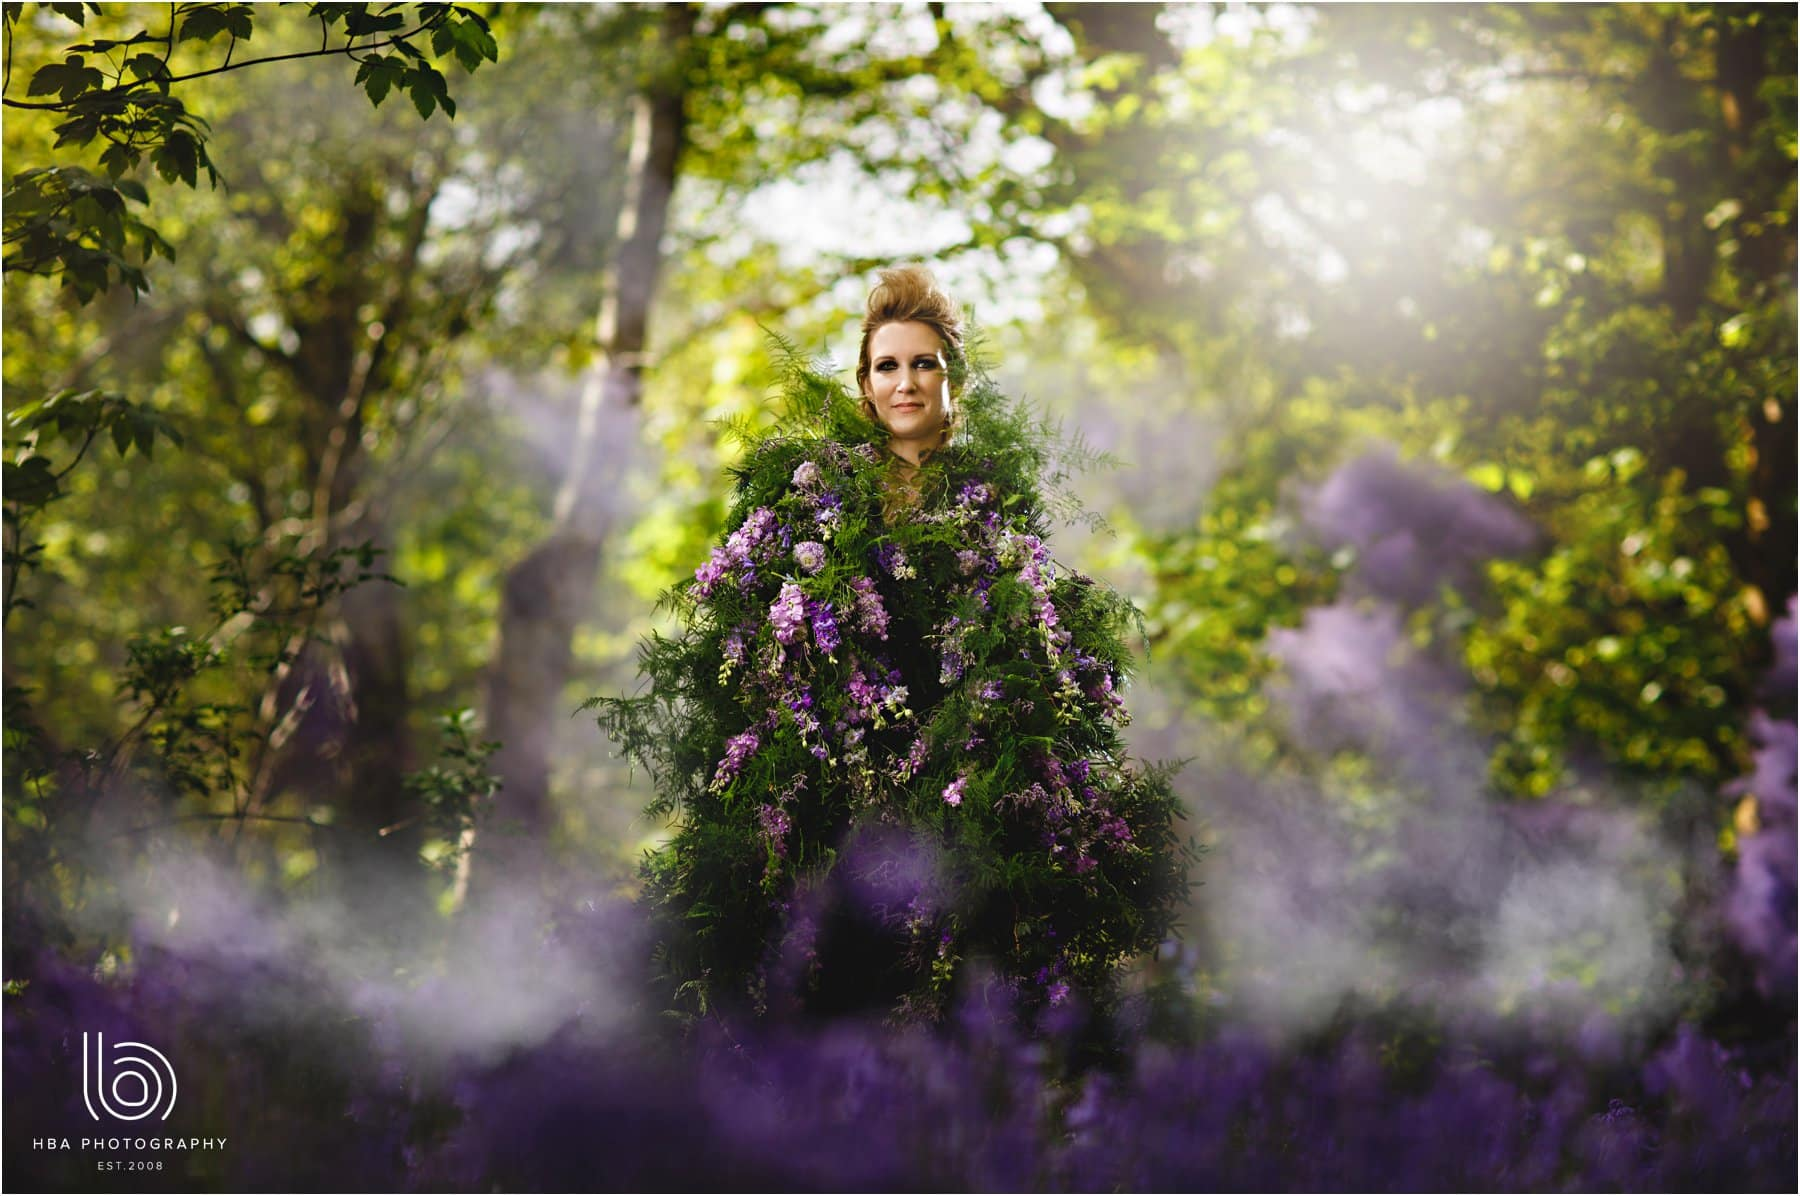 Conceptual woodland shoot